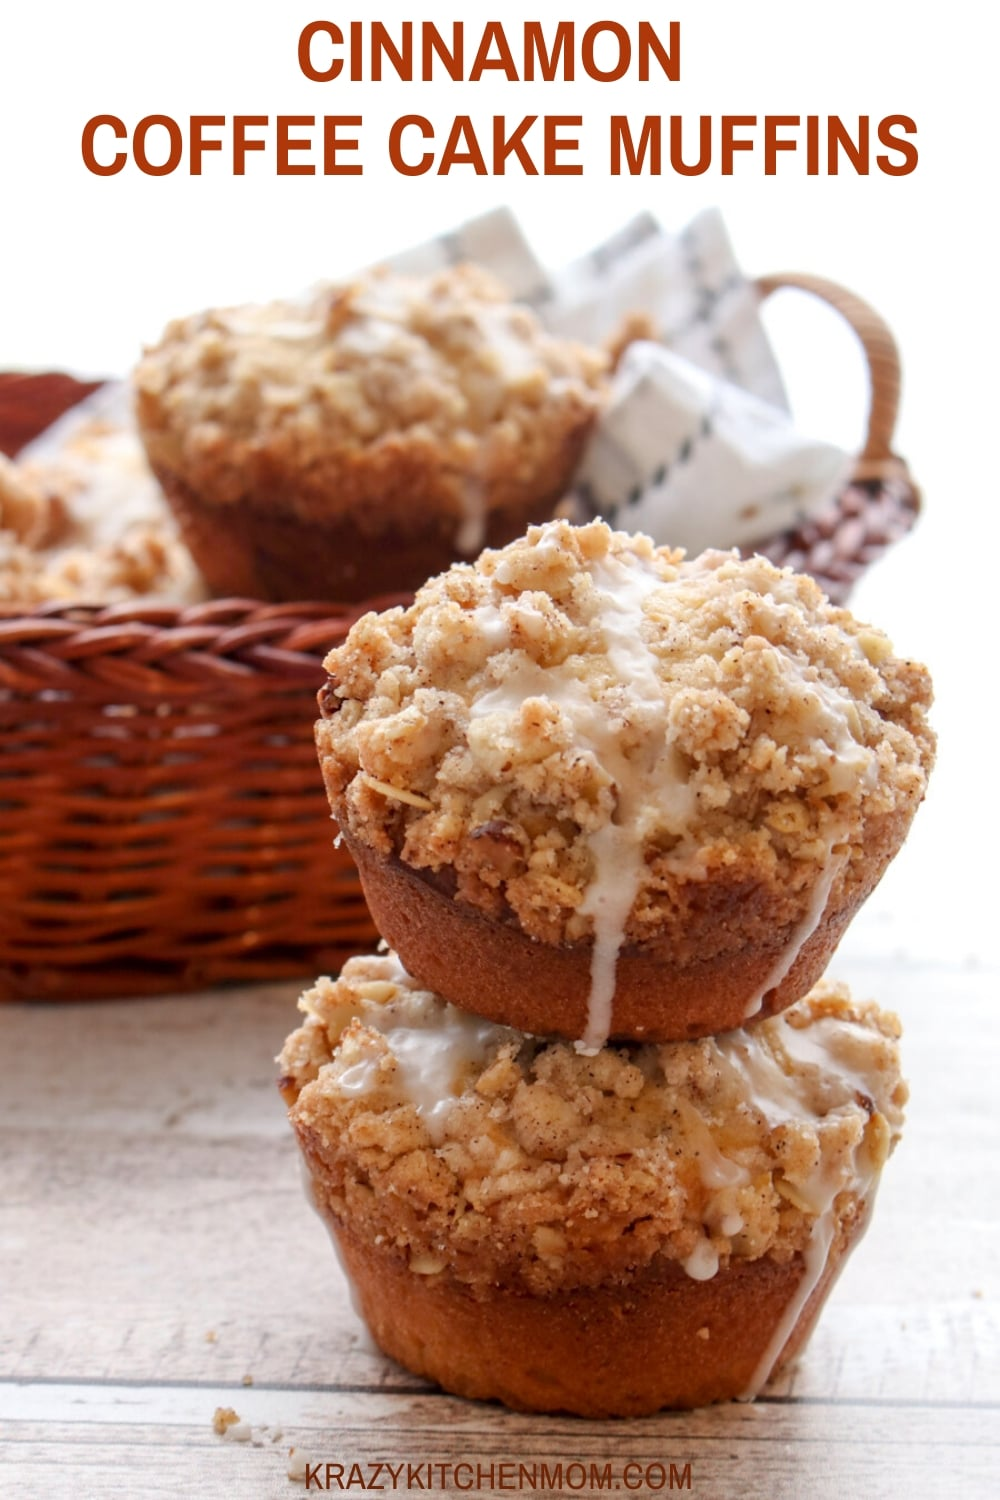 What's better than starting your day with a hot cup of coffee and a plate of warm Cinnamon Coffee Cake Muffins with a Cinnamon Streusel Topping? via @krazykitchenmom